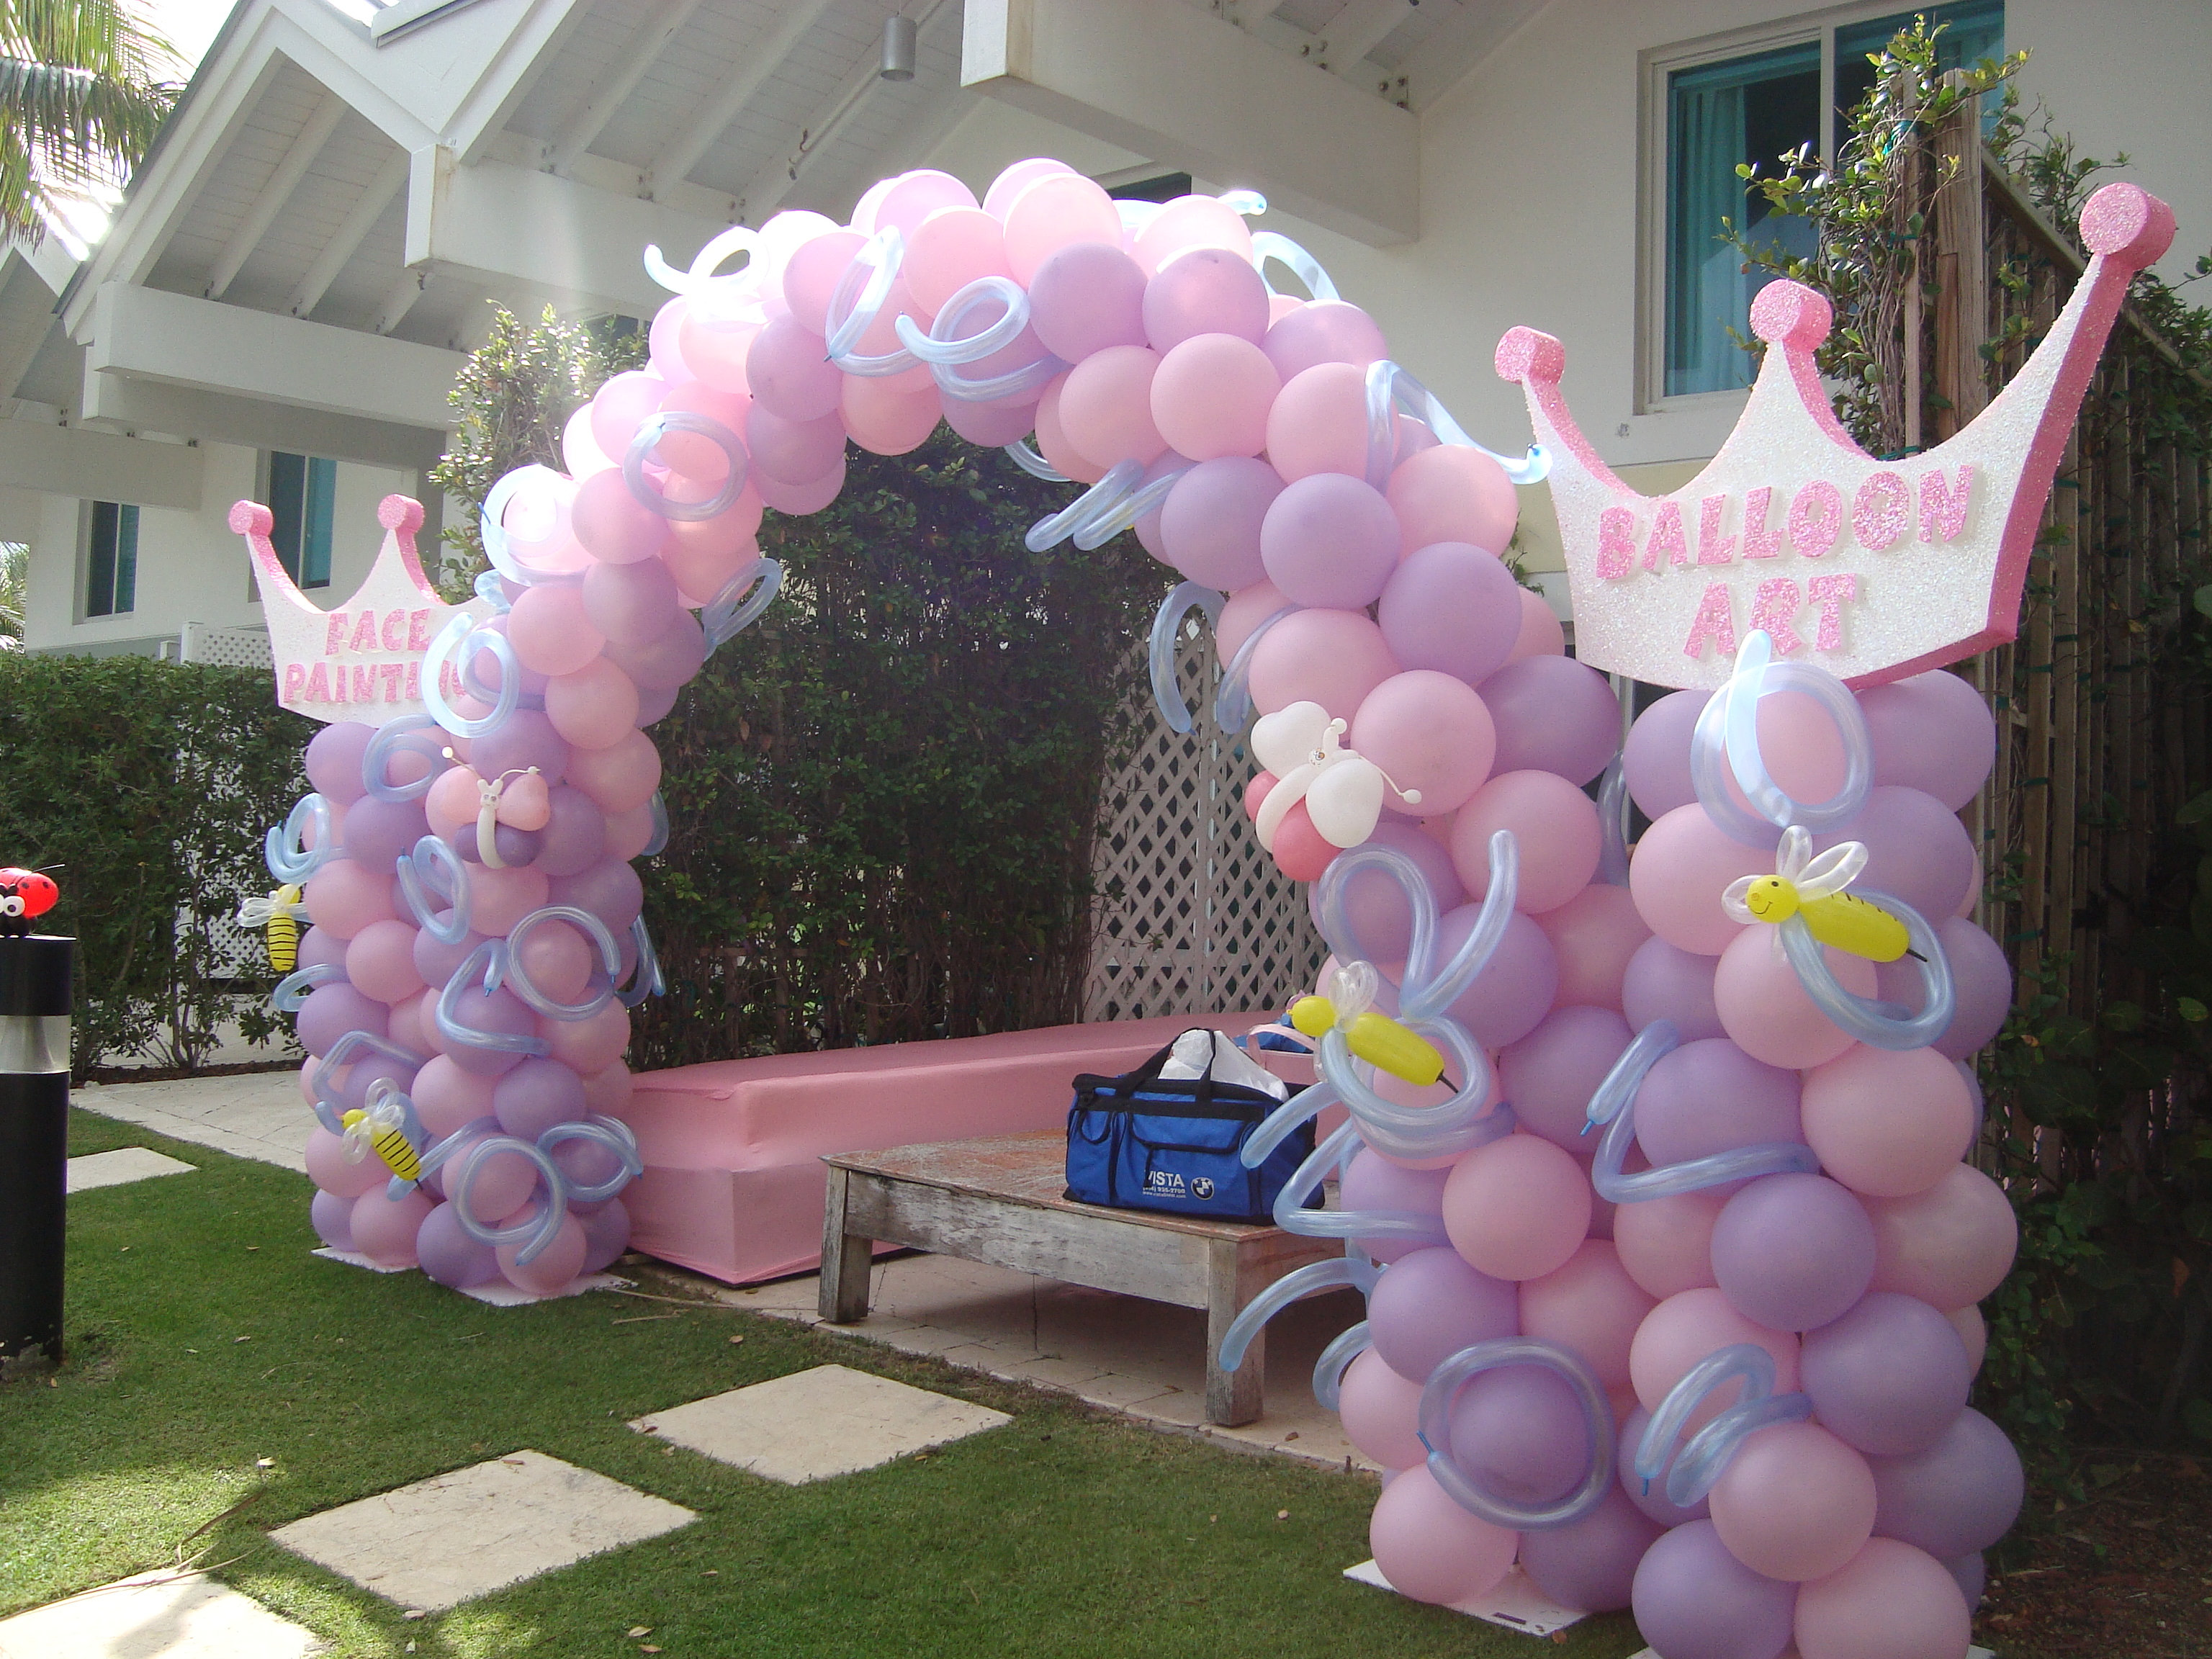 Princess Balloon Decoration Brand Marketing Promotions Special Events Balloon Decoration